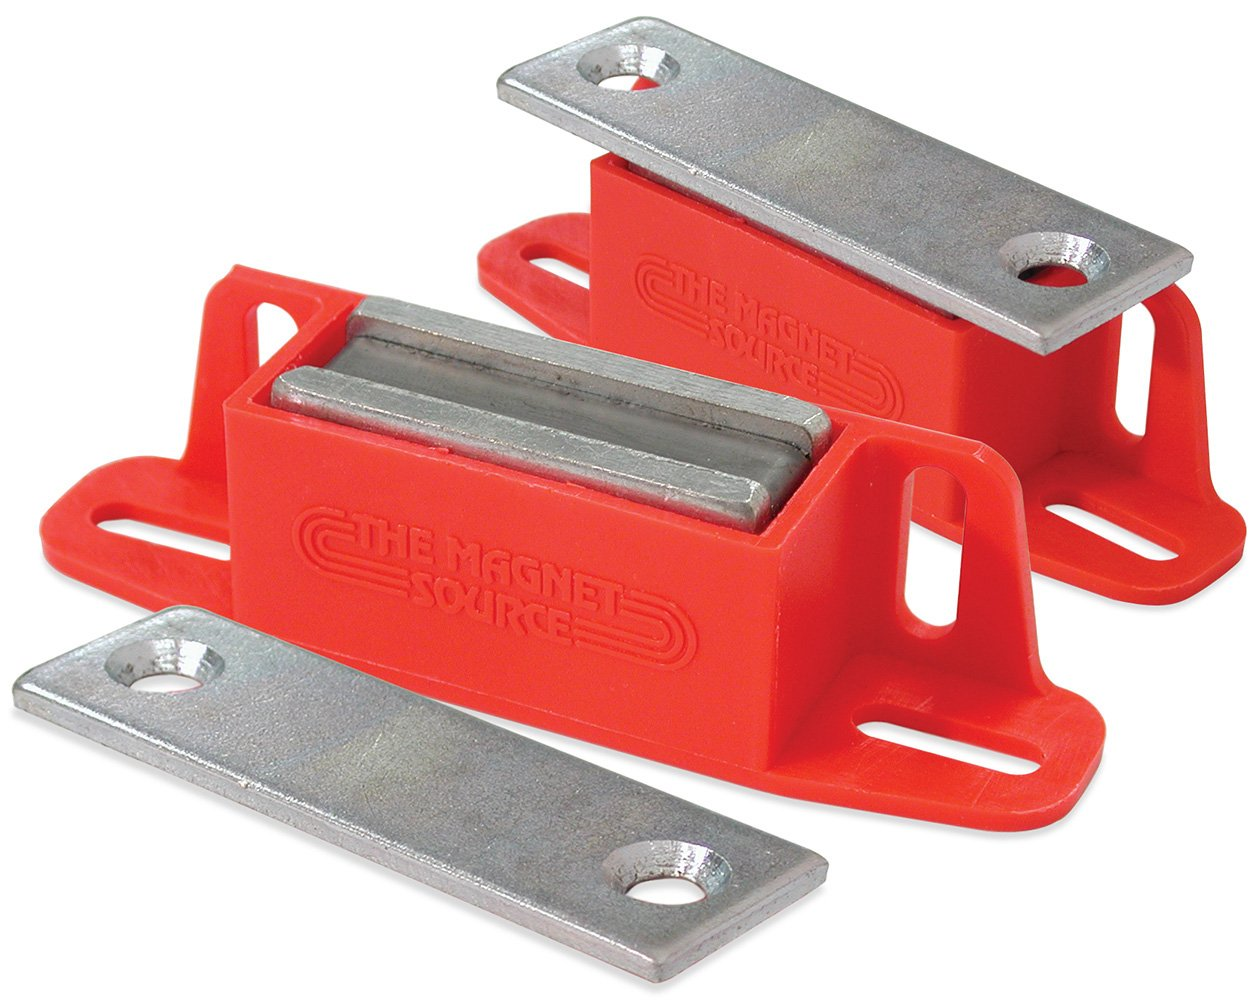 Master Magnetics 07502X2 Magnet Catch, Universal Latch with Strike-Plate, 2-Way Mounting Red, 4.25'' Length, 0.938'' Width, 1.125'' Height, 50 Pounds (Pack of 2)